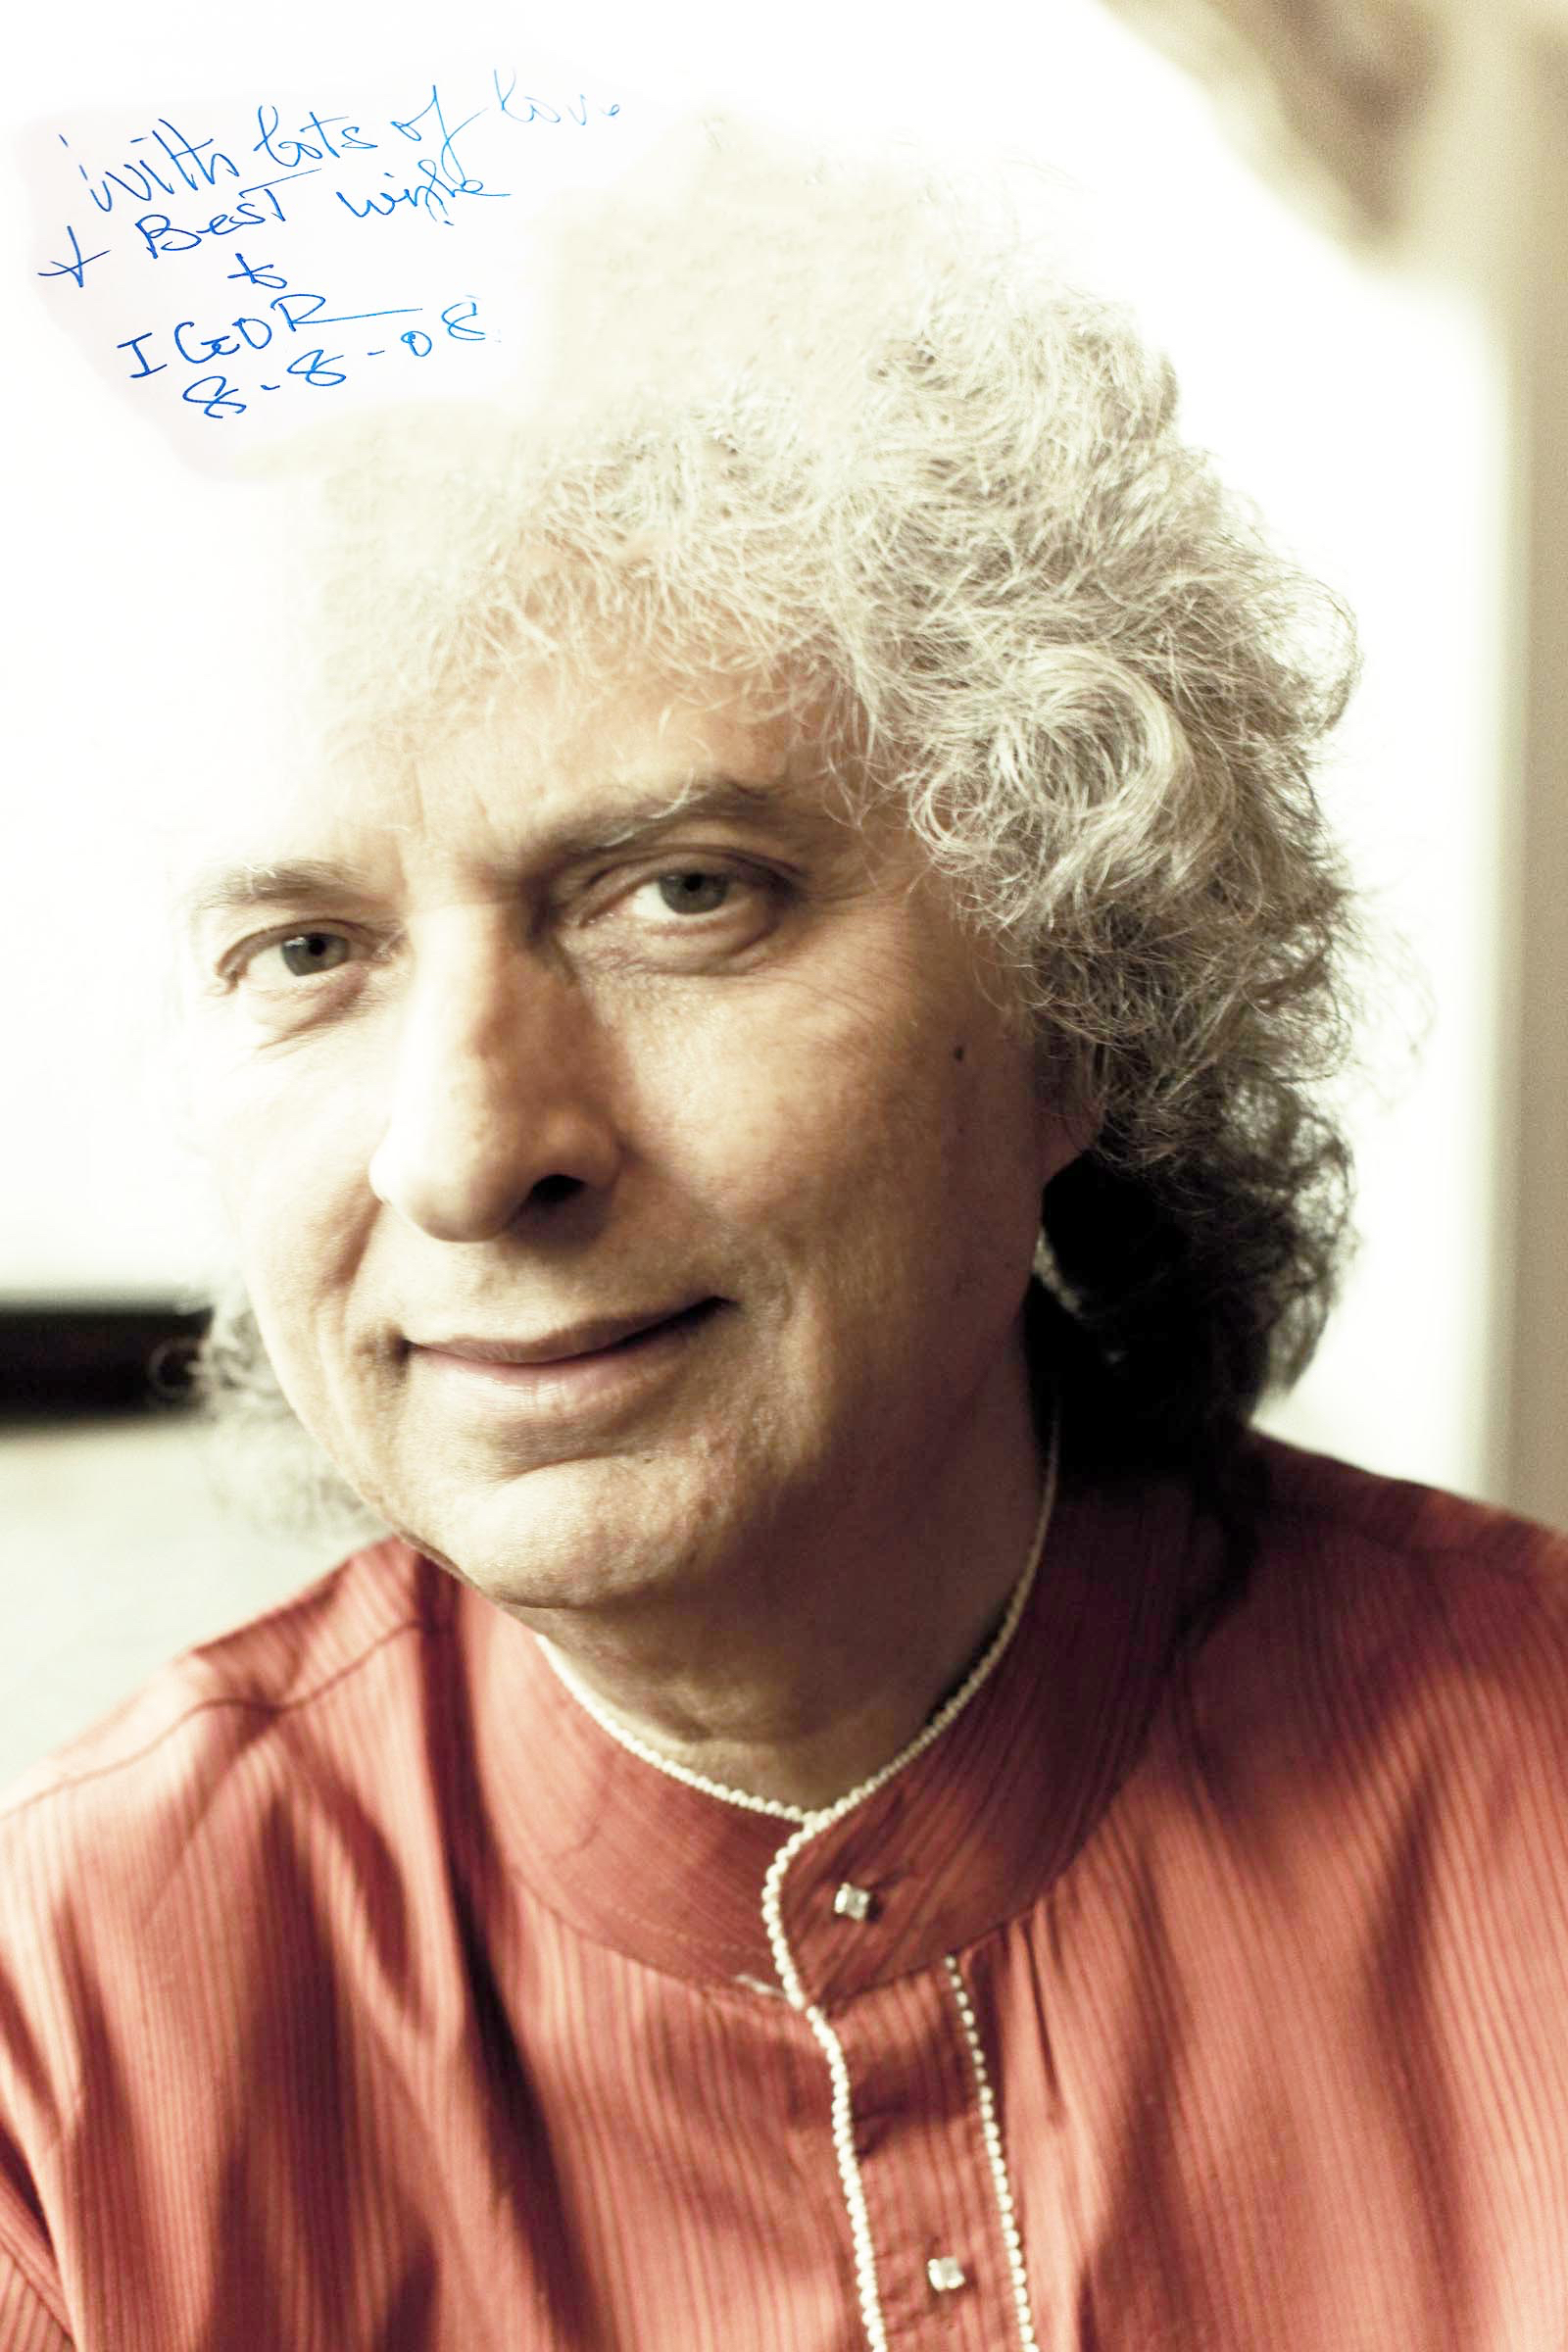 SHIV KUMAR SHARMA DEDICACE PHOTO .jpg